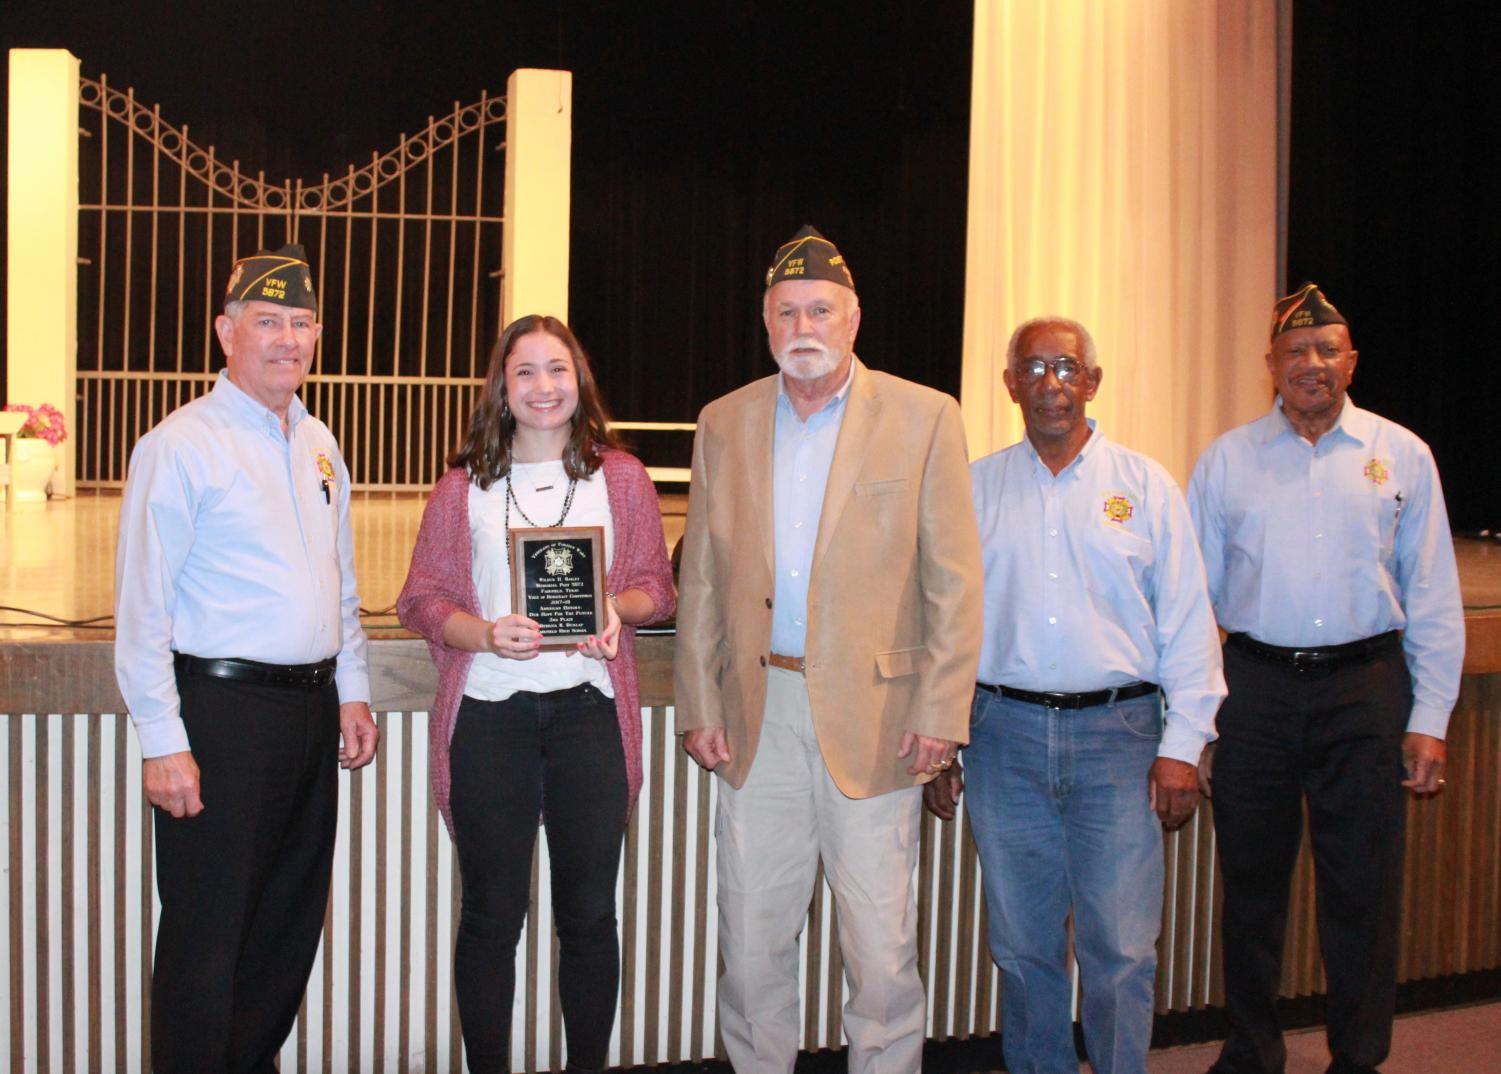 Members of the VFW present Rebecca Dunlap with an award and $150 for her speech.